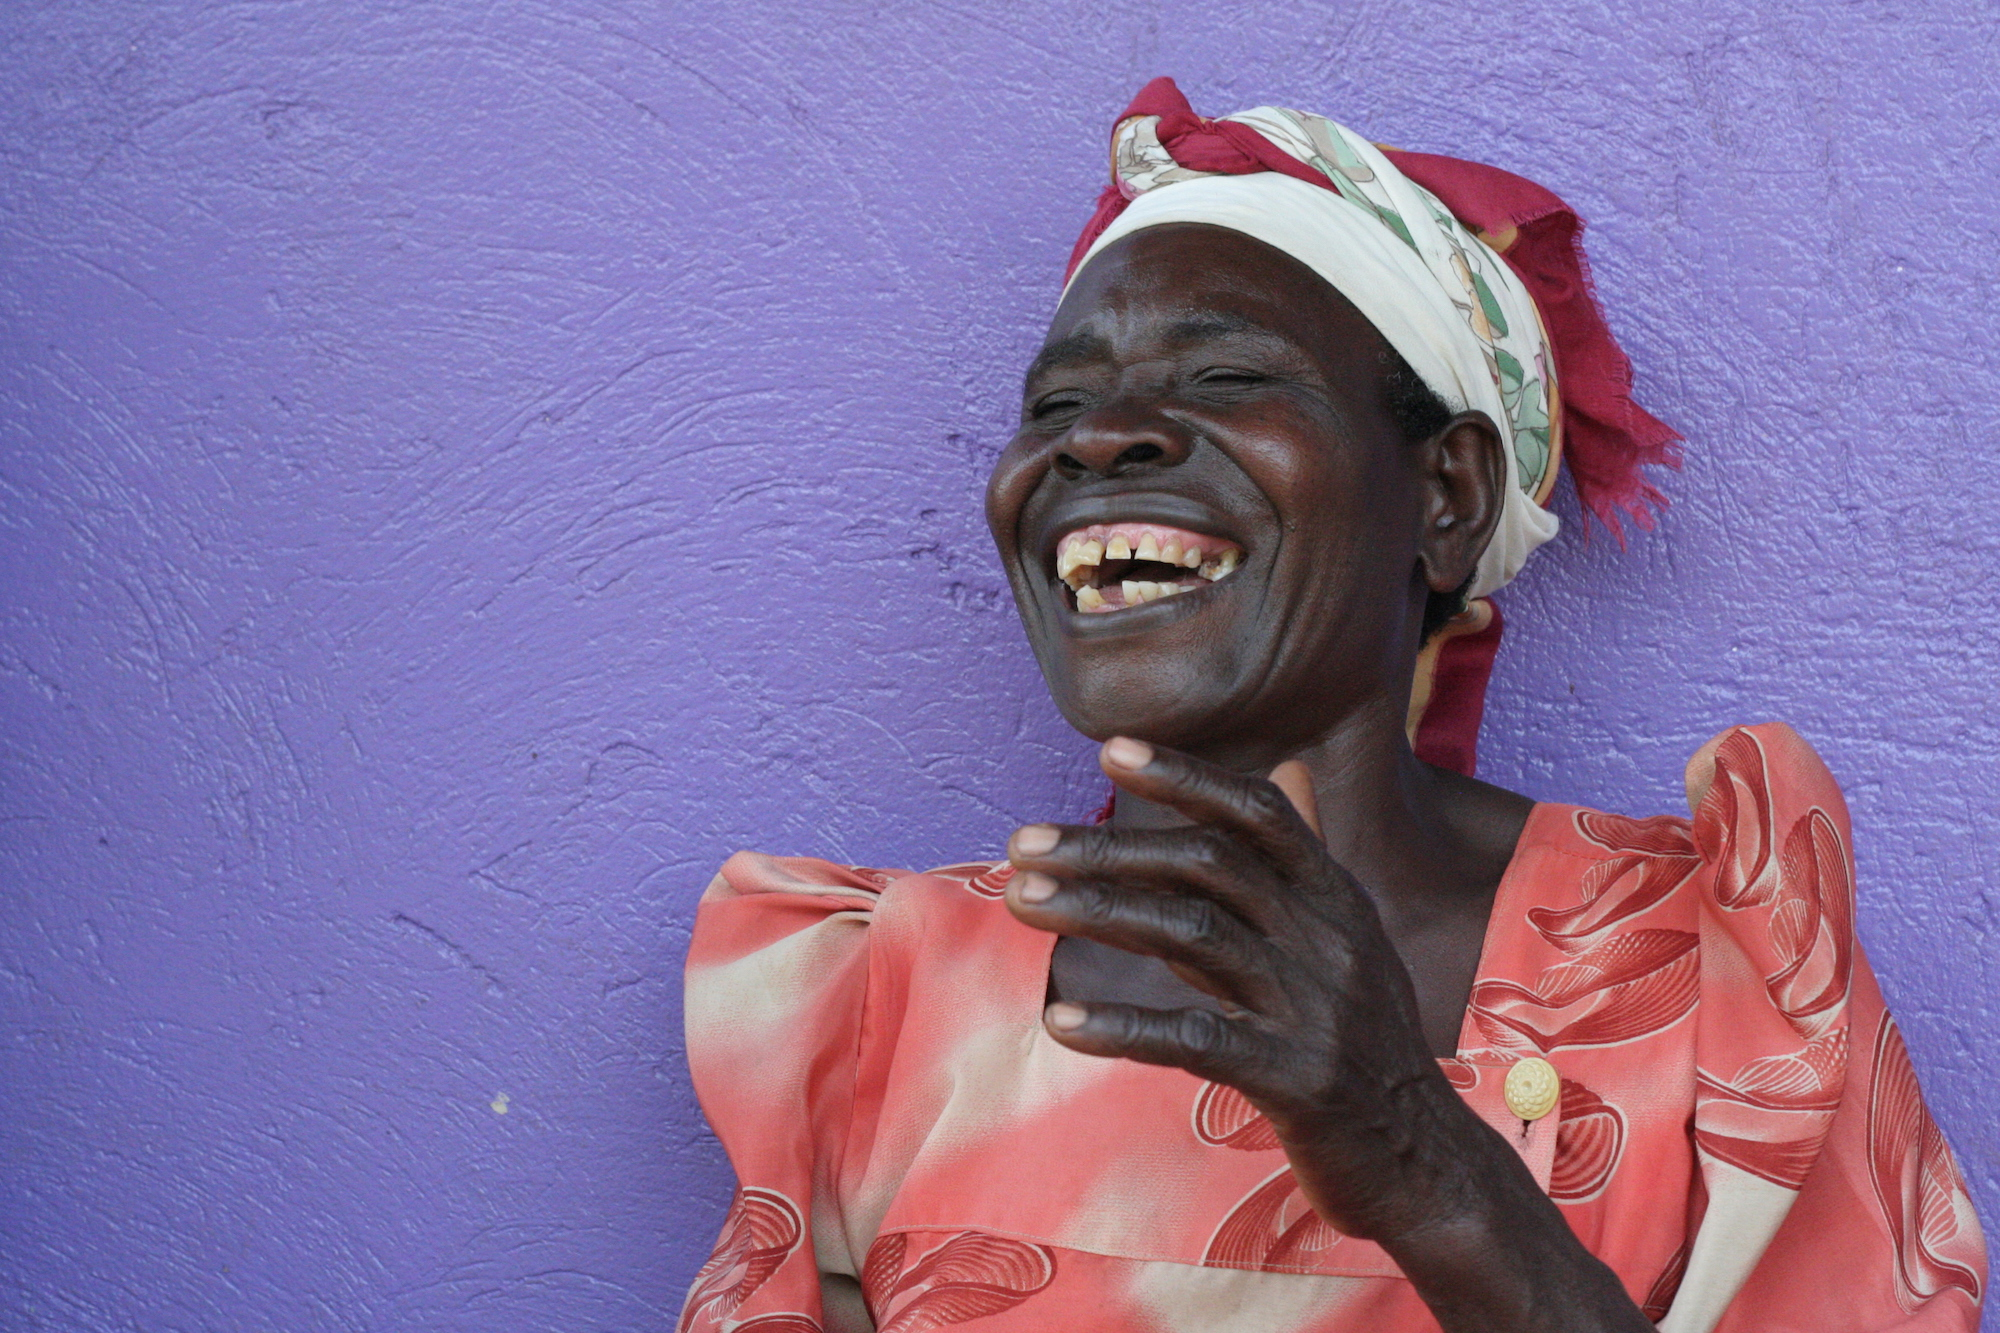 Woman laughing in front of a purple wall